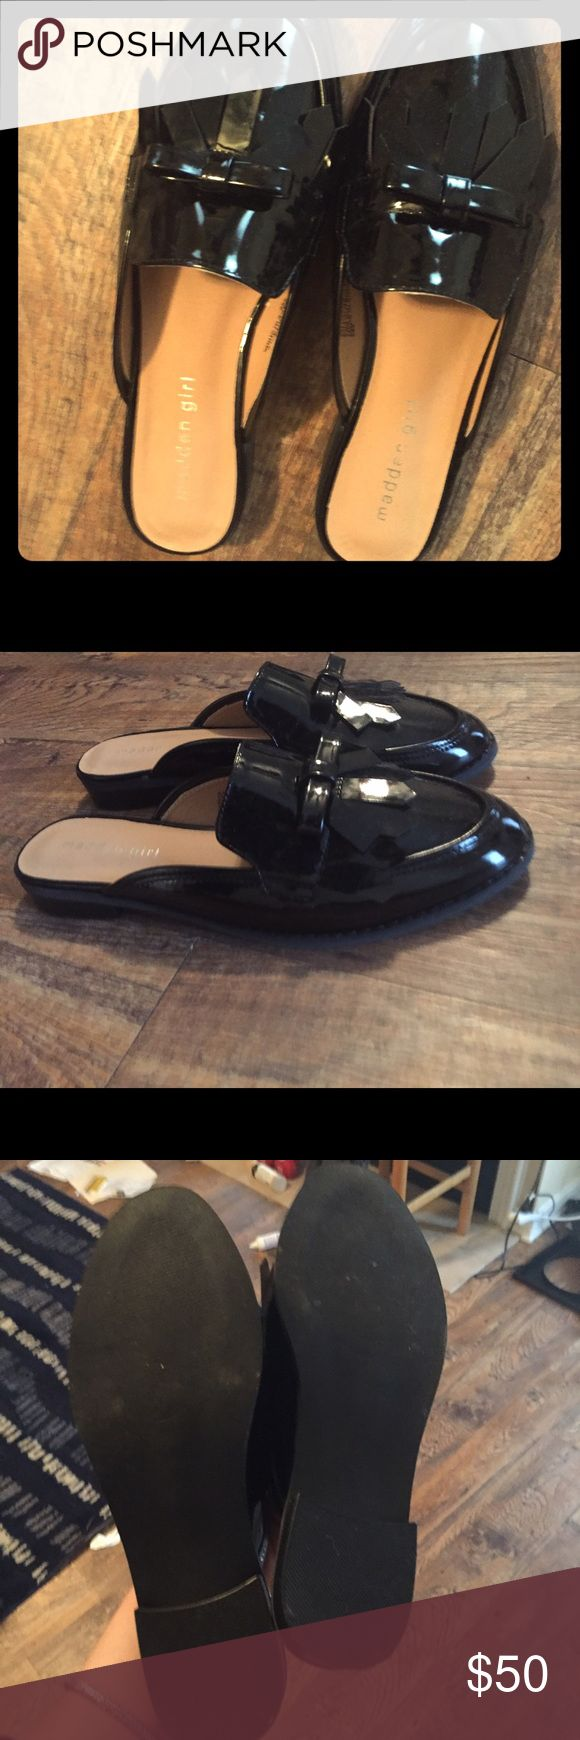 Steve Madden loafers! Worn for one hour. Steve Madden Shoes Flats & Loafers